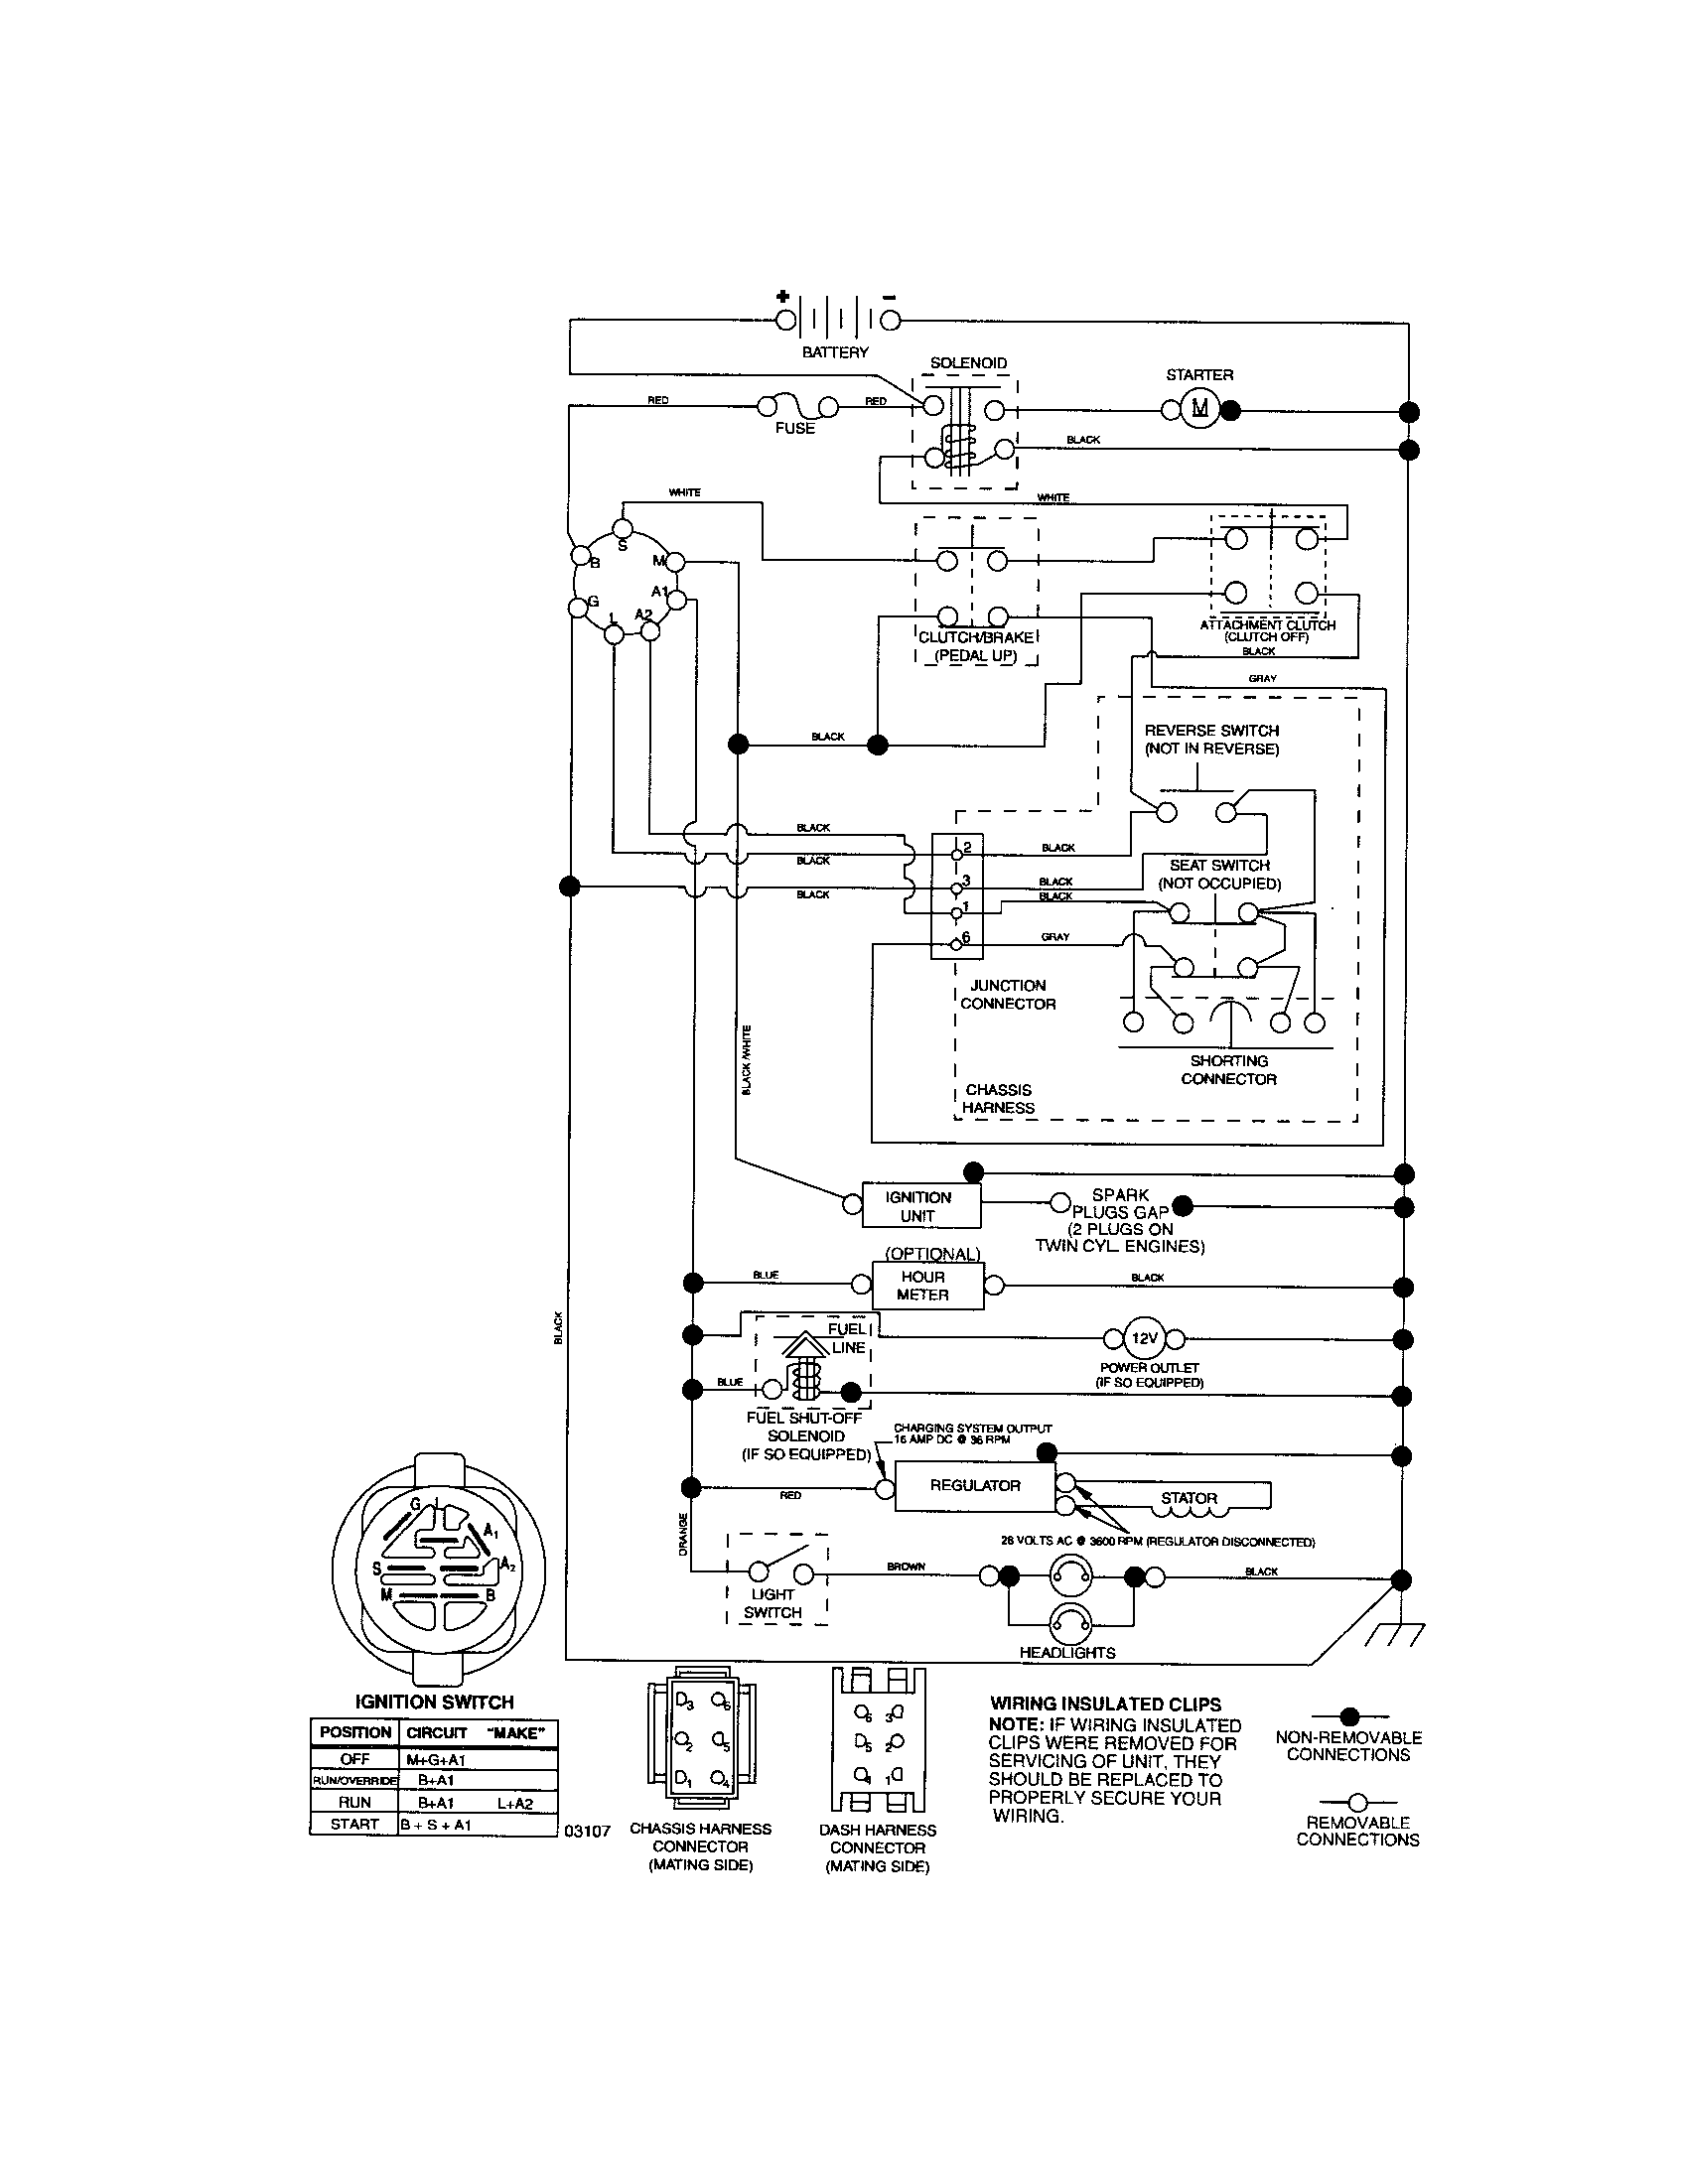 craftsman riding mower electrical diagram wiring diagram craftsmancraftsman riding mower electrical diagram wiring diagram craftsman riding lawn mower i need one for